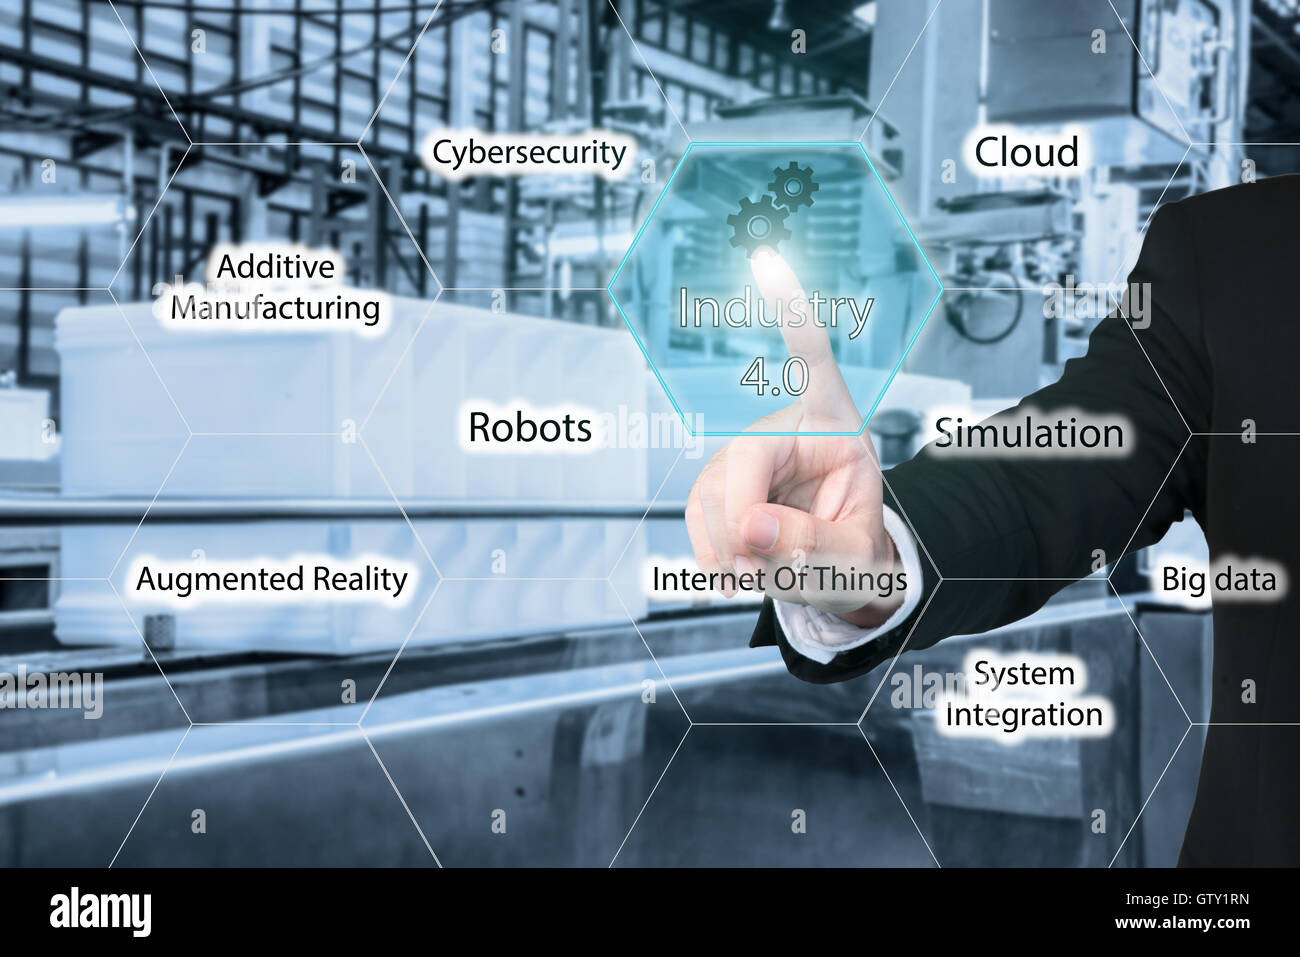 Business man touching industry 4.0 icon in virtual interface screen showing data of smart factory. Business industry - Stock Image